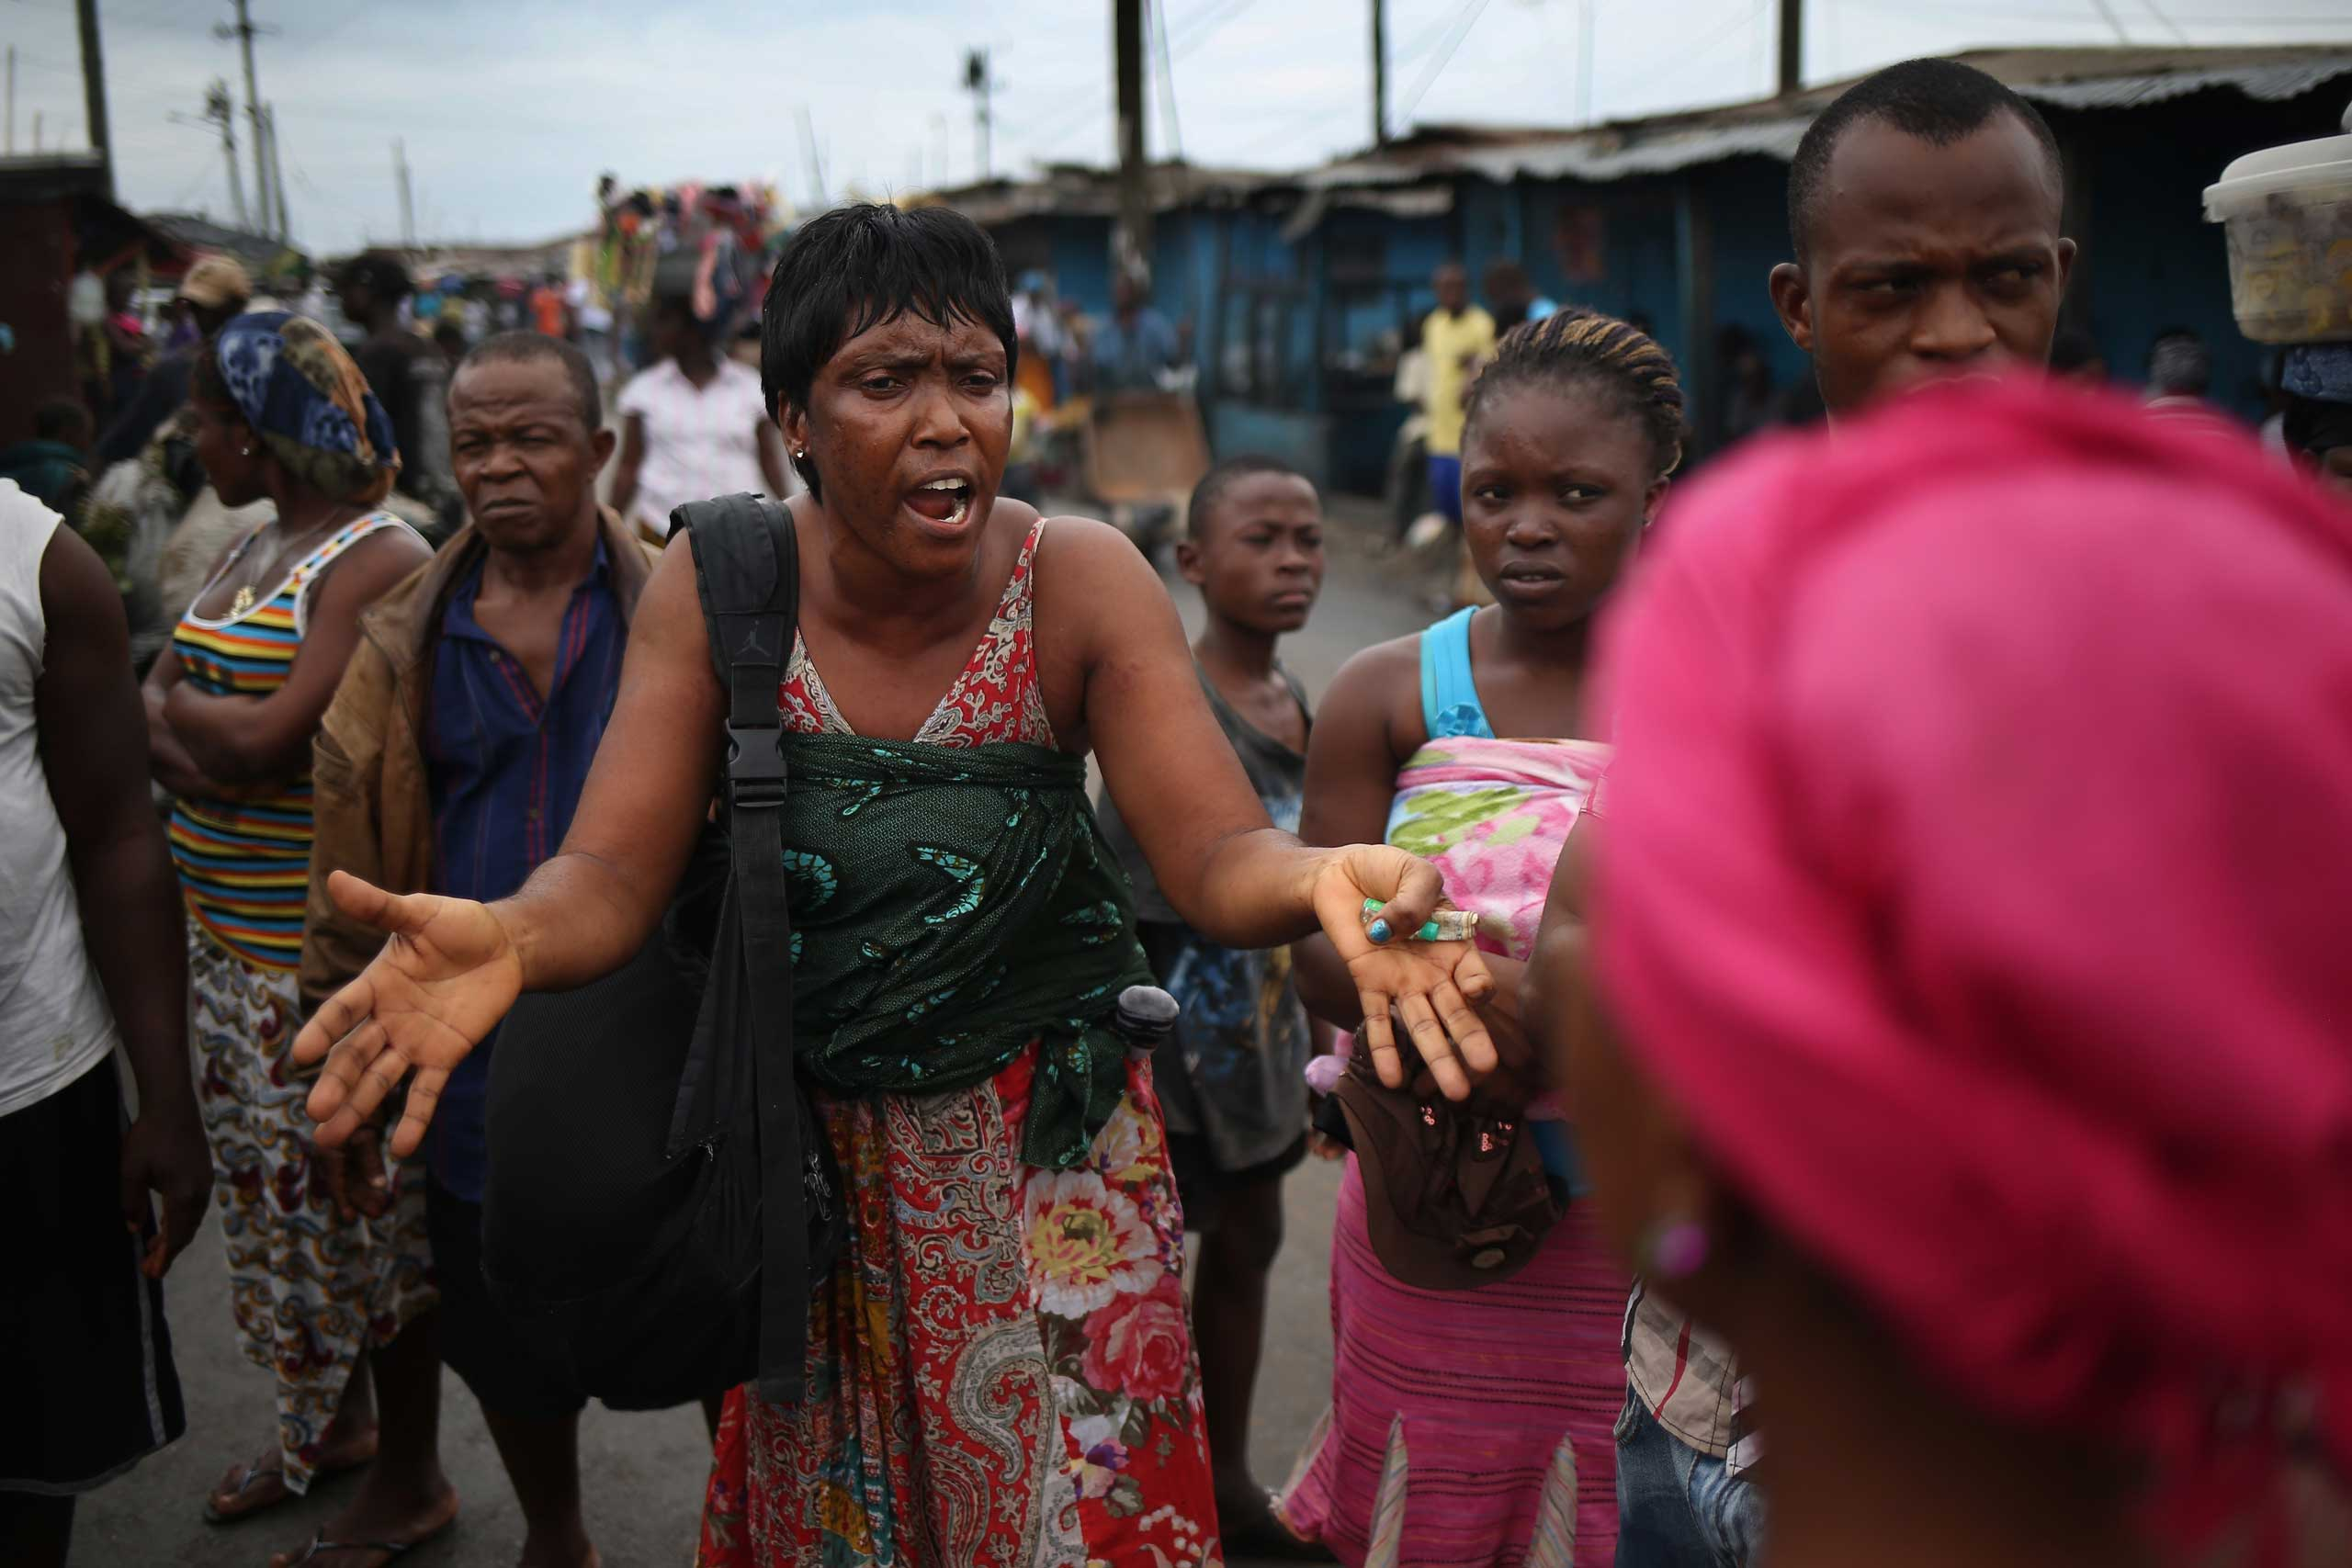 Batu Flowers tries to convince local residents that the Ebola epidemic is real on Aug. 16, 2014 in Monrovia.